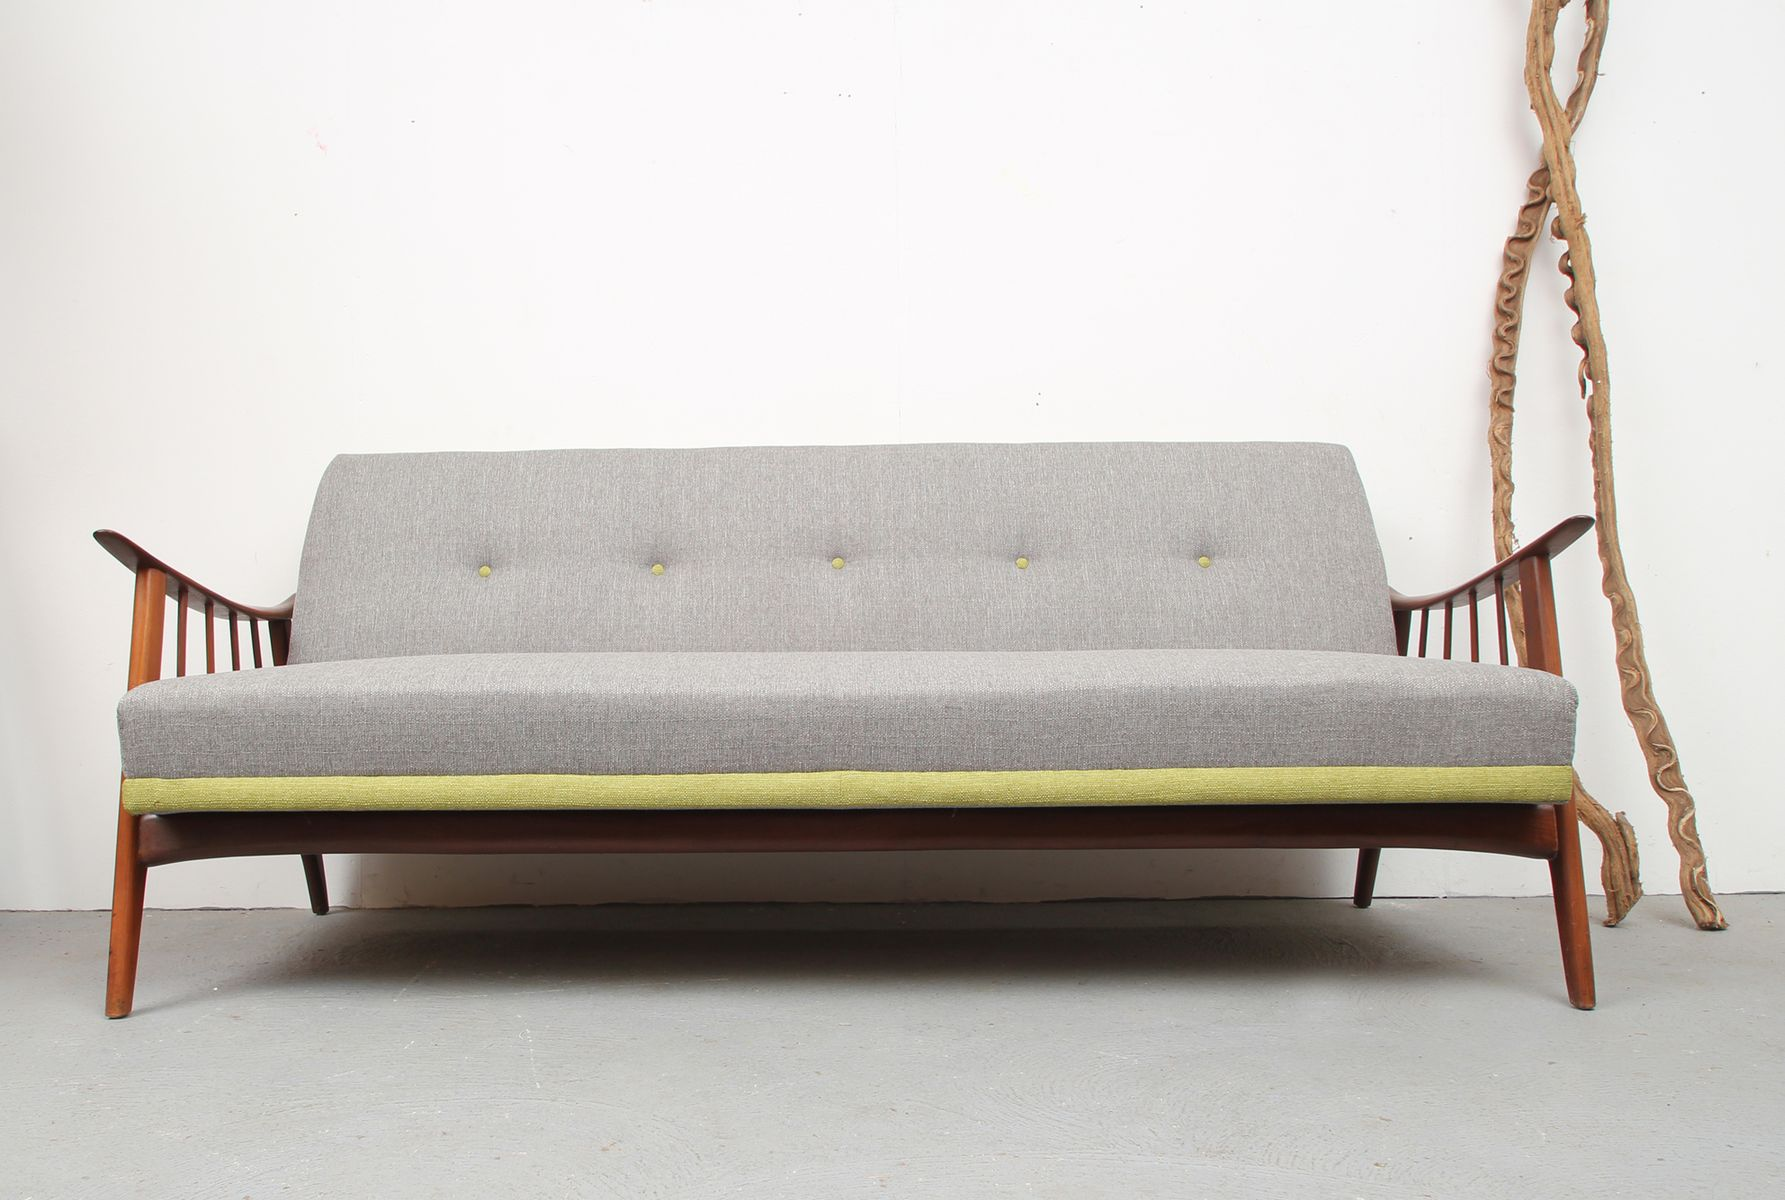 vintage scandinavian daybed sofa 1950s for sale at pamono. Black Bedroom Furniture Sets. Home Design Ideas